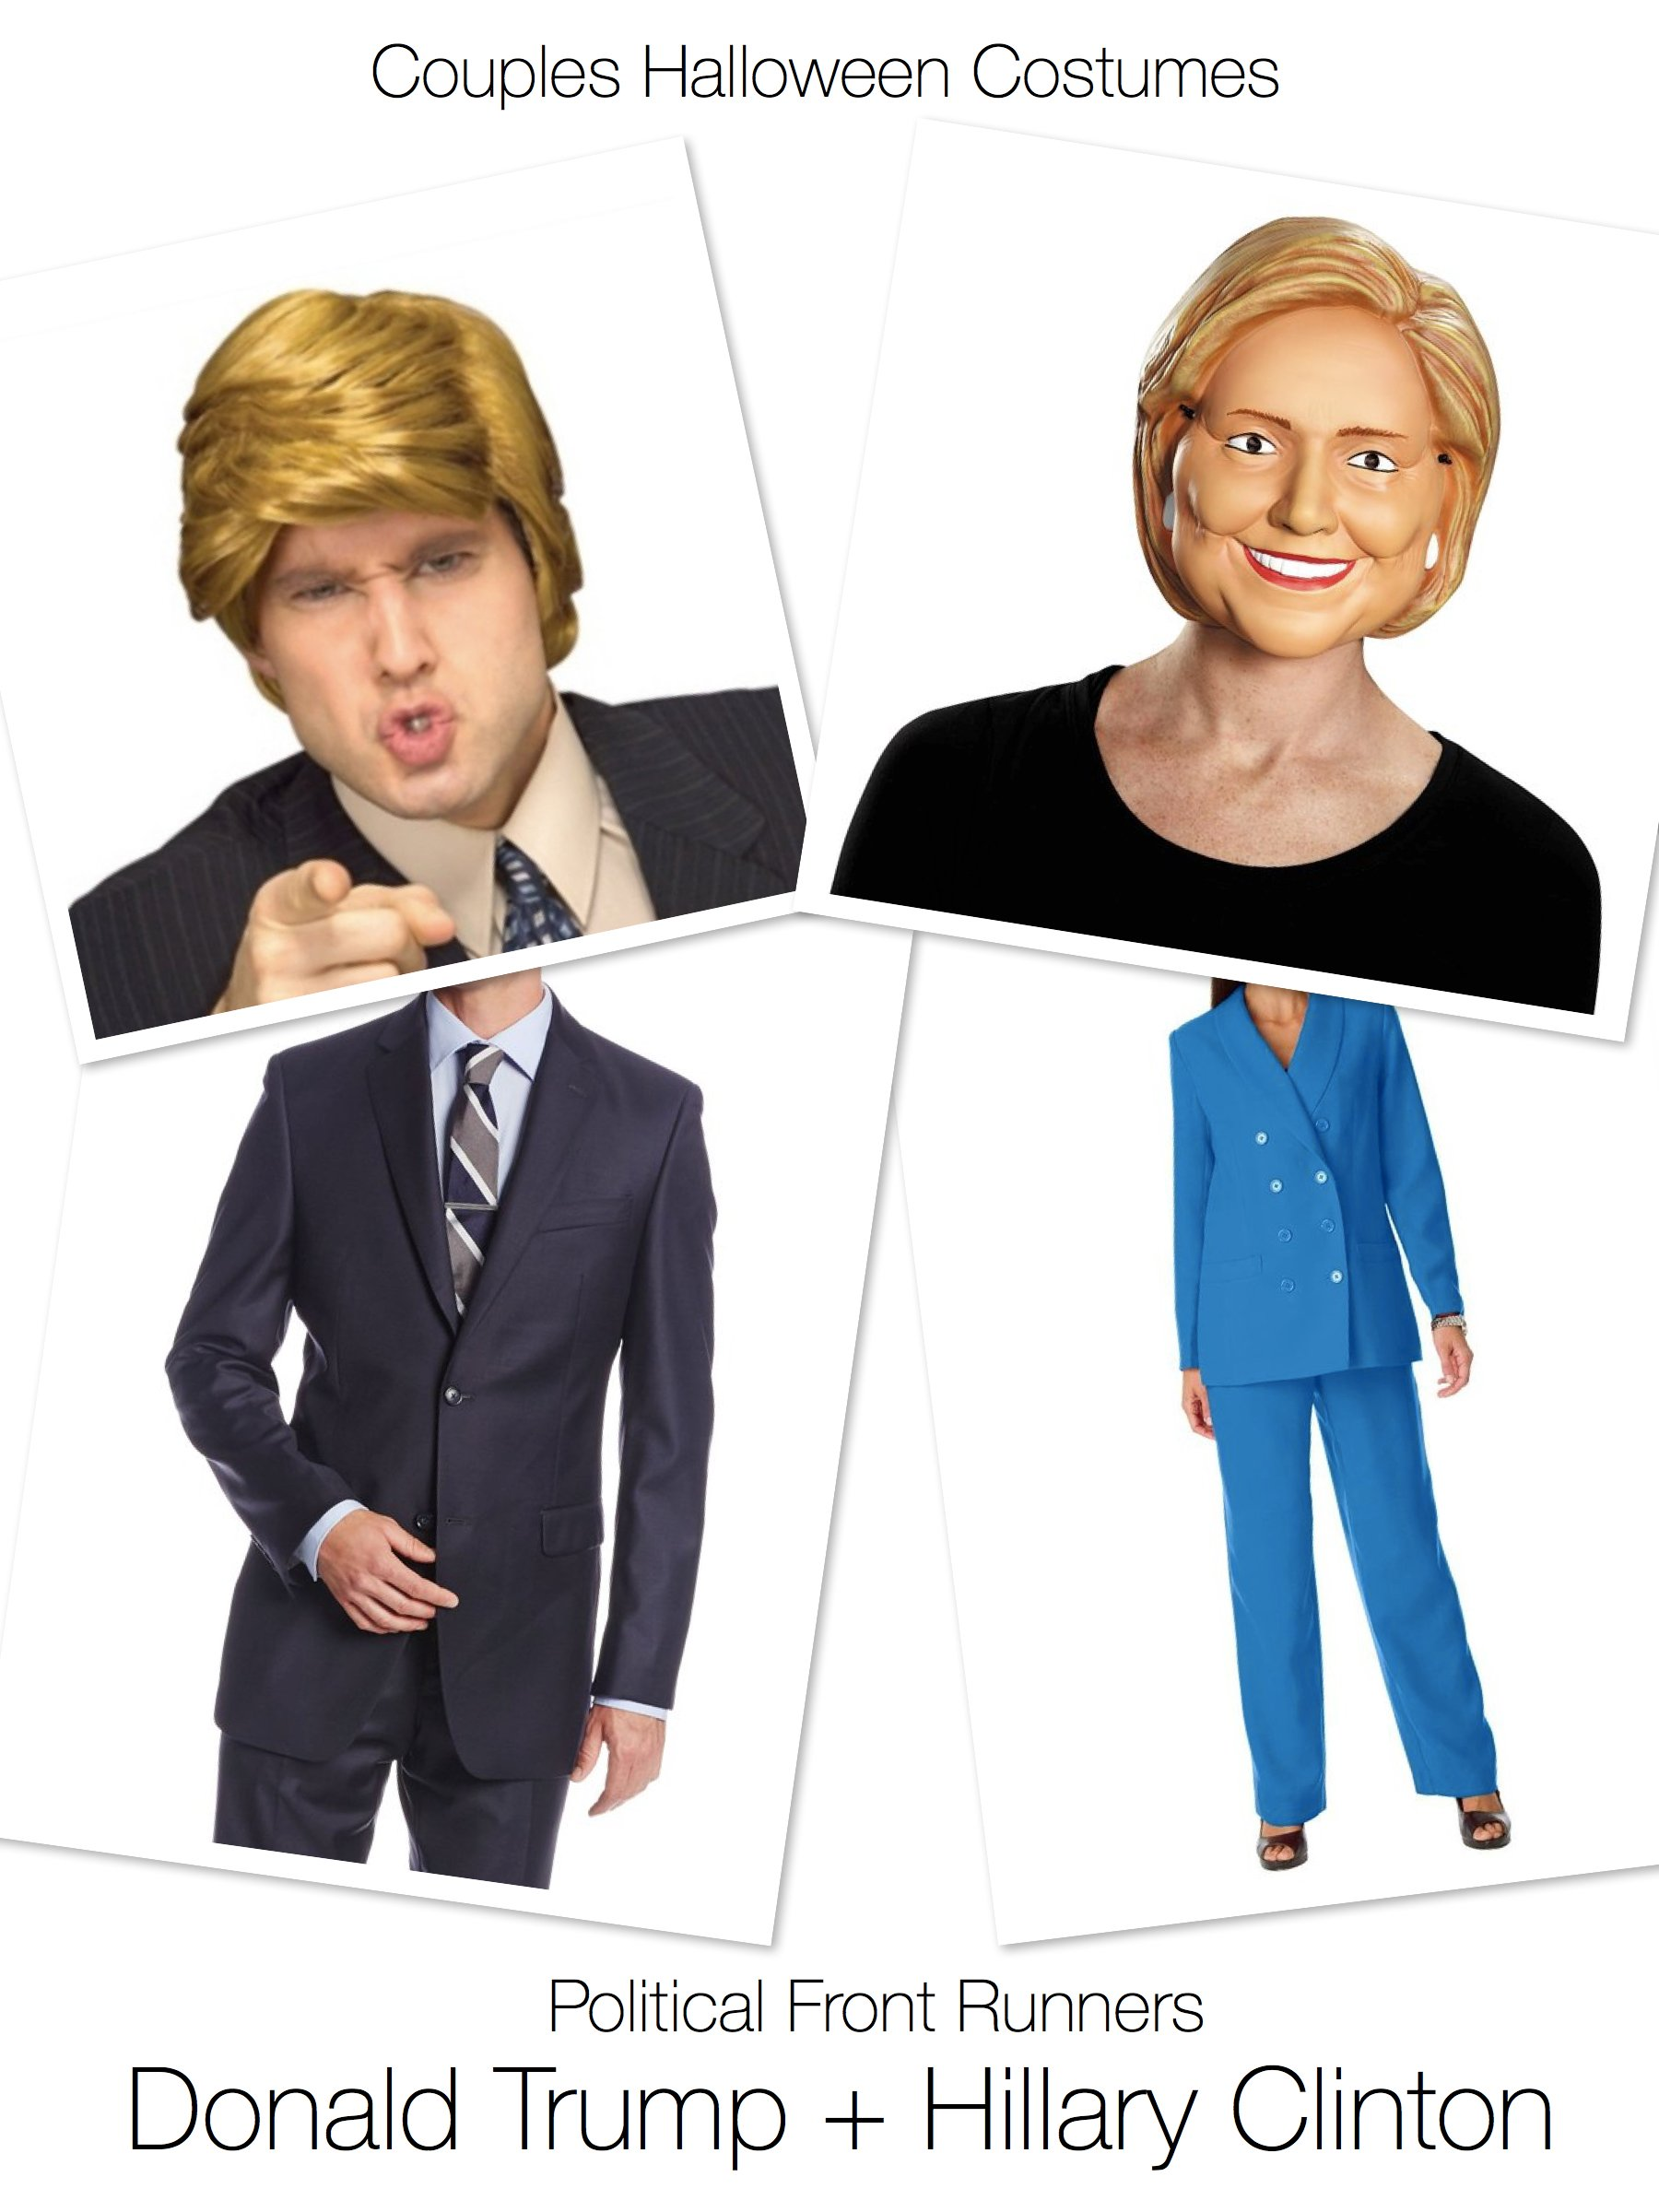 Couples Halloween Costumes Donald Trump & Hillary Clinton